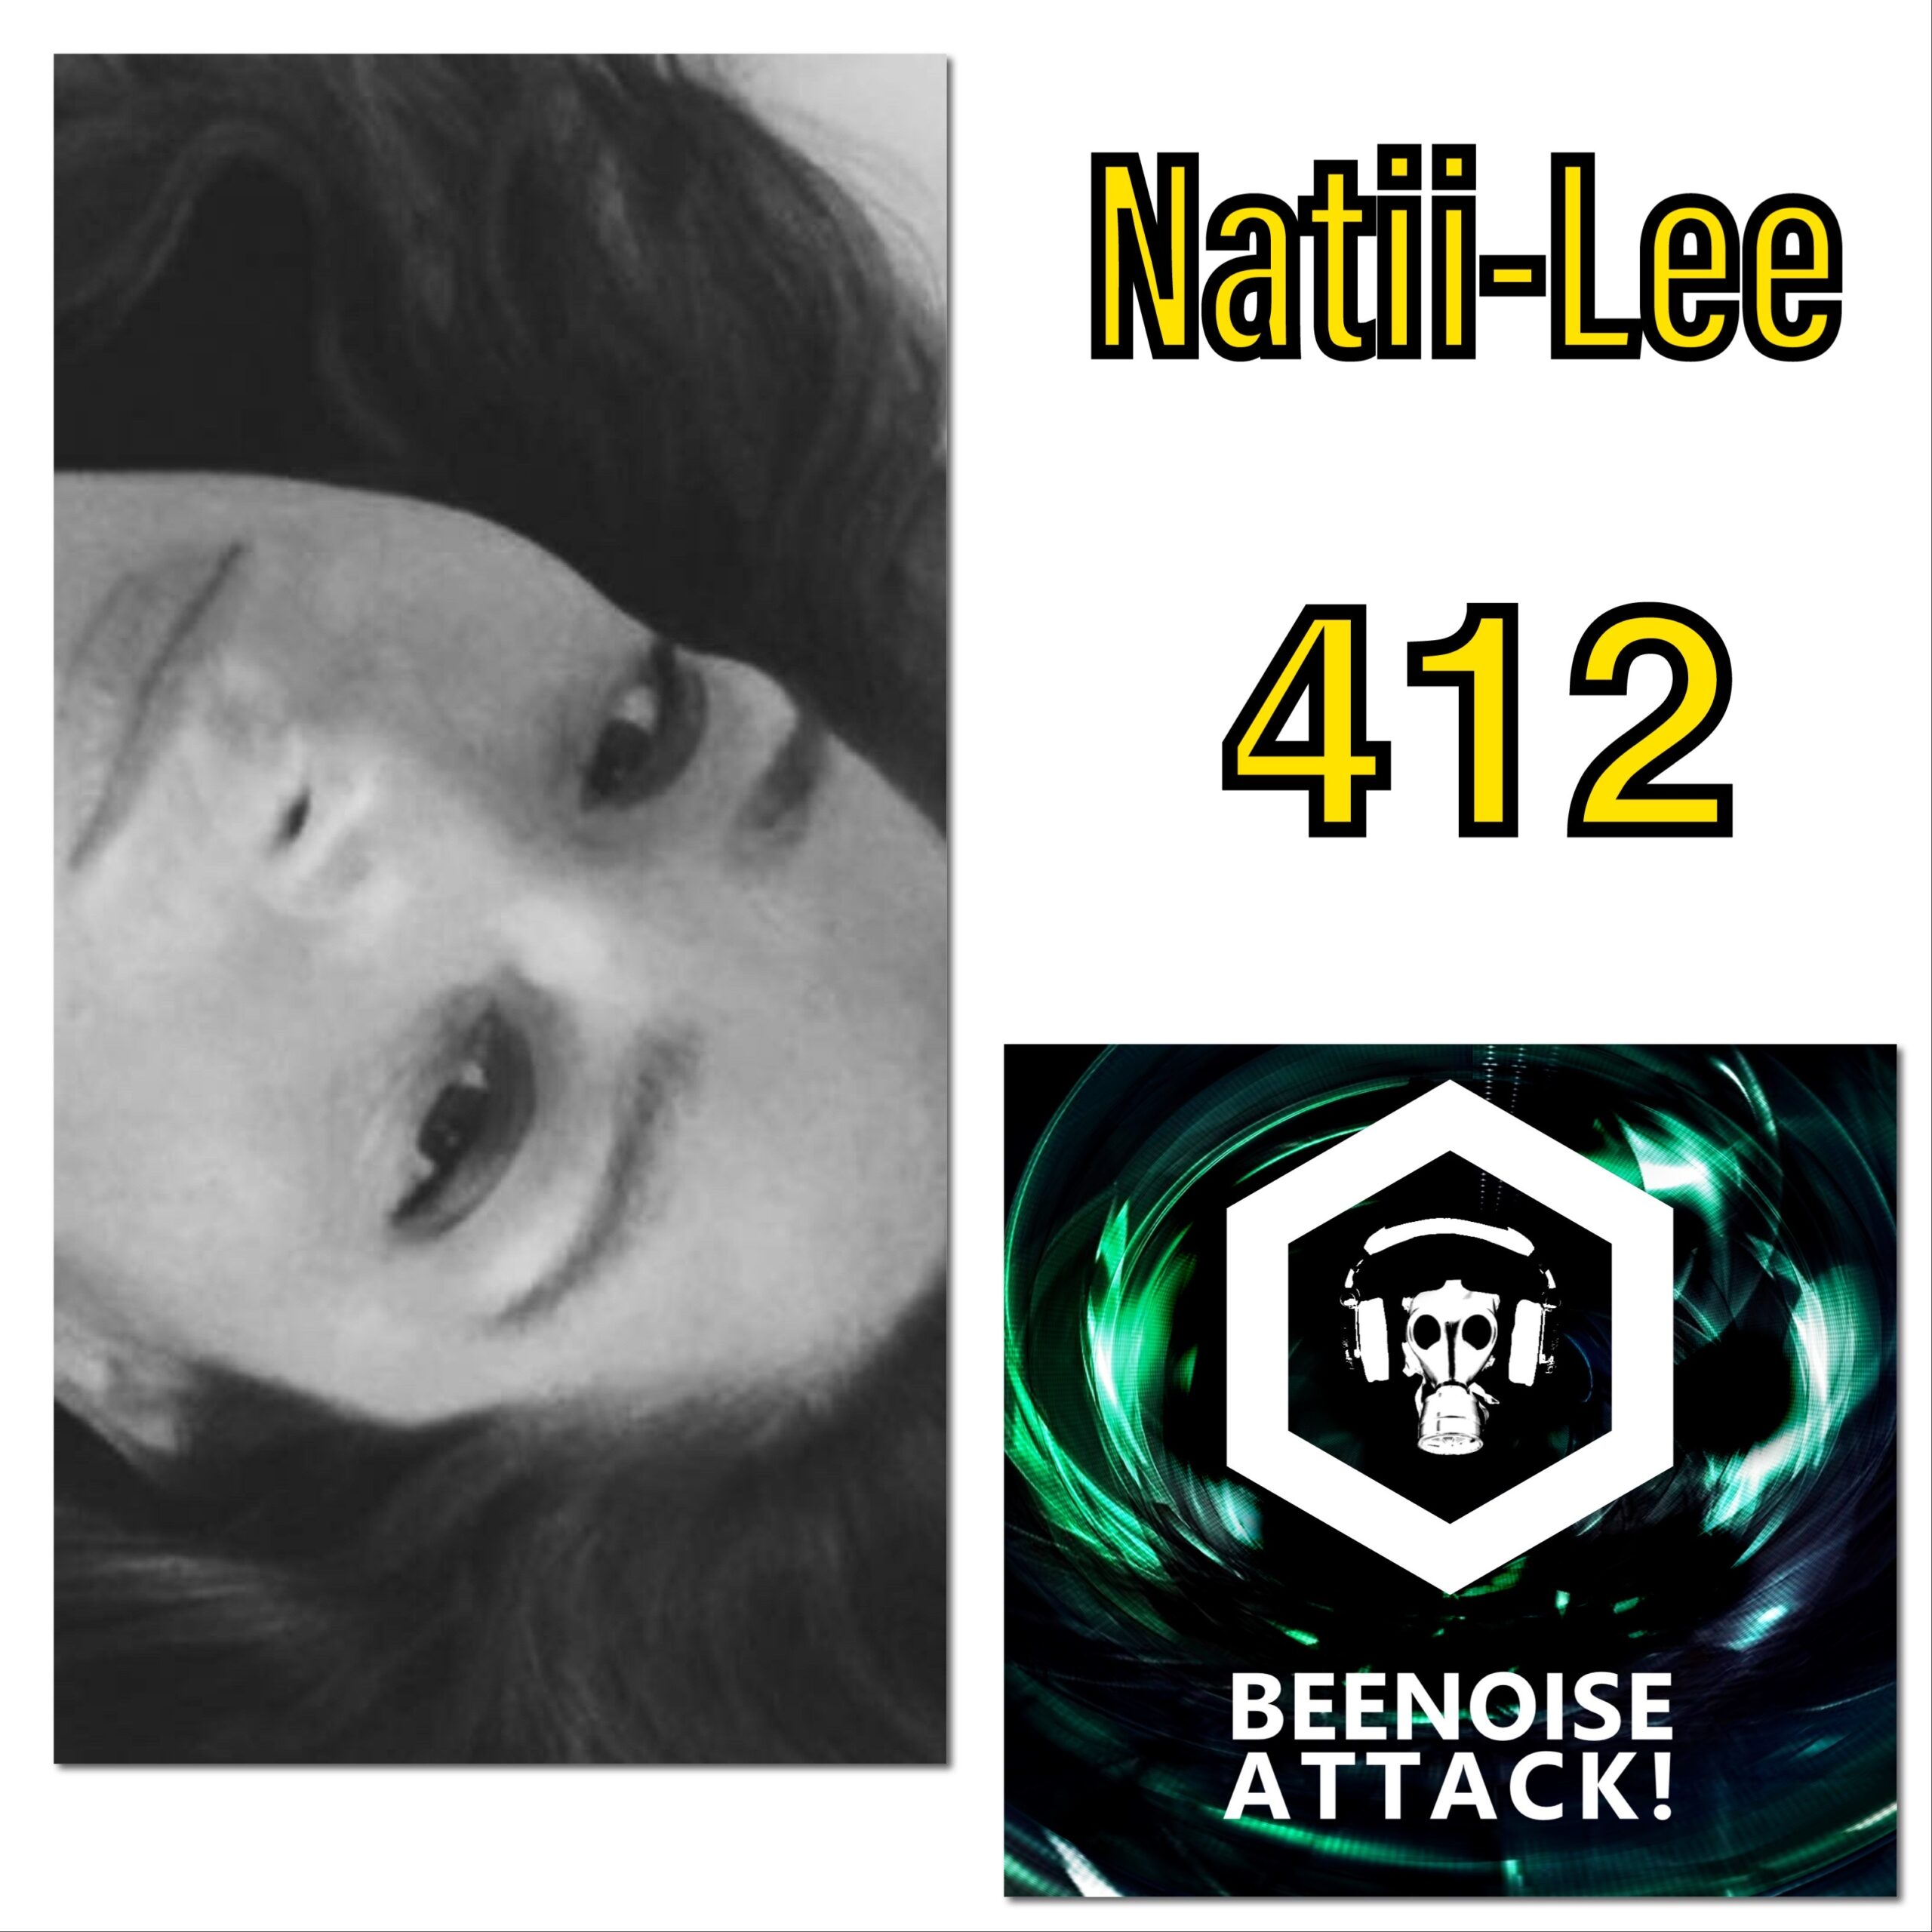 Beenoise Attack episode 412